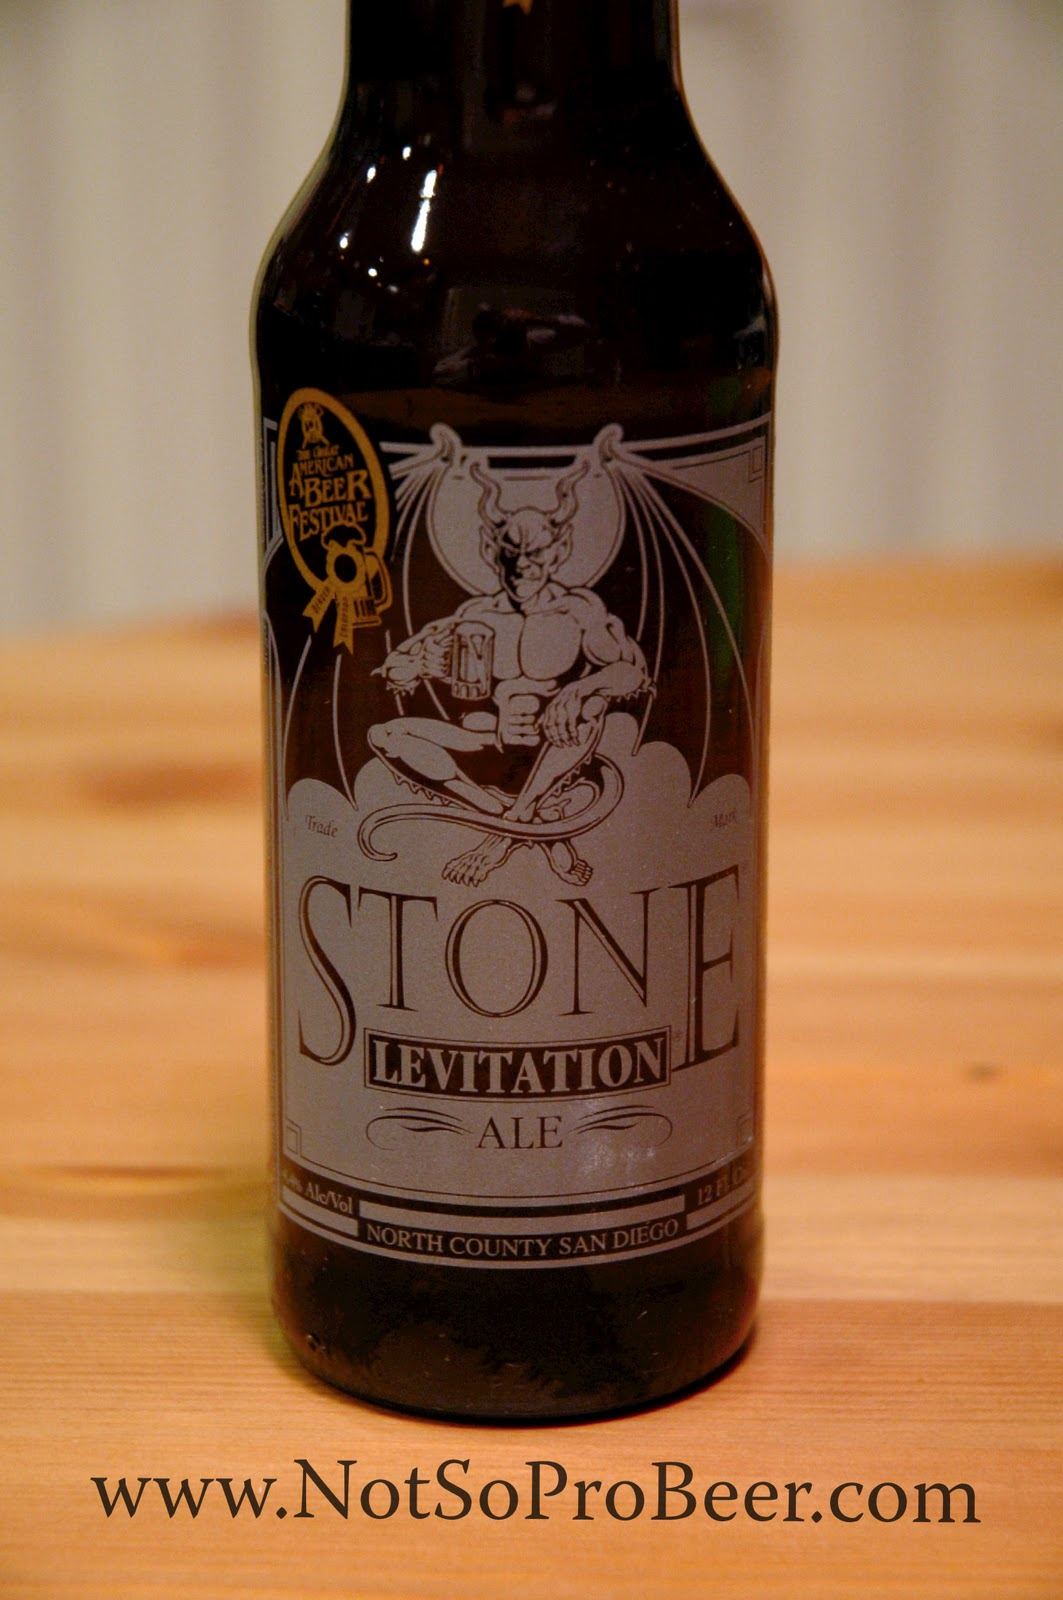 Stone Levitation Ale : The not so professional beer review levitation ale